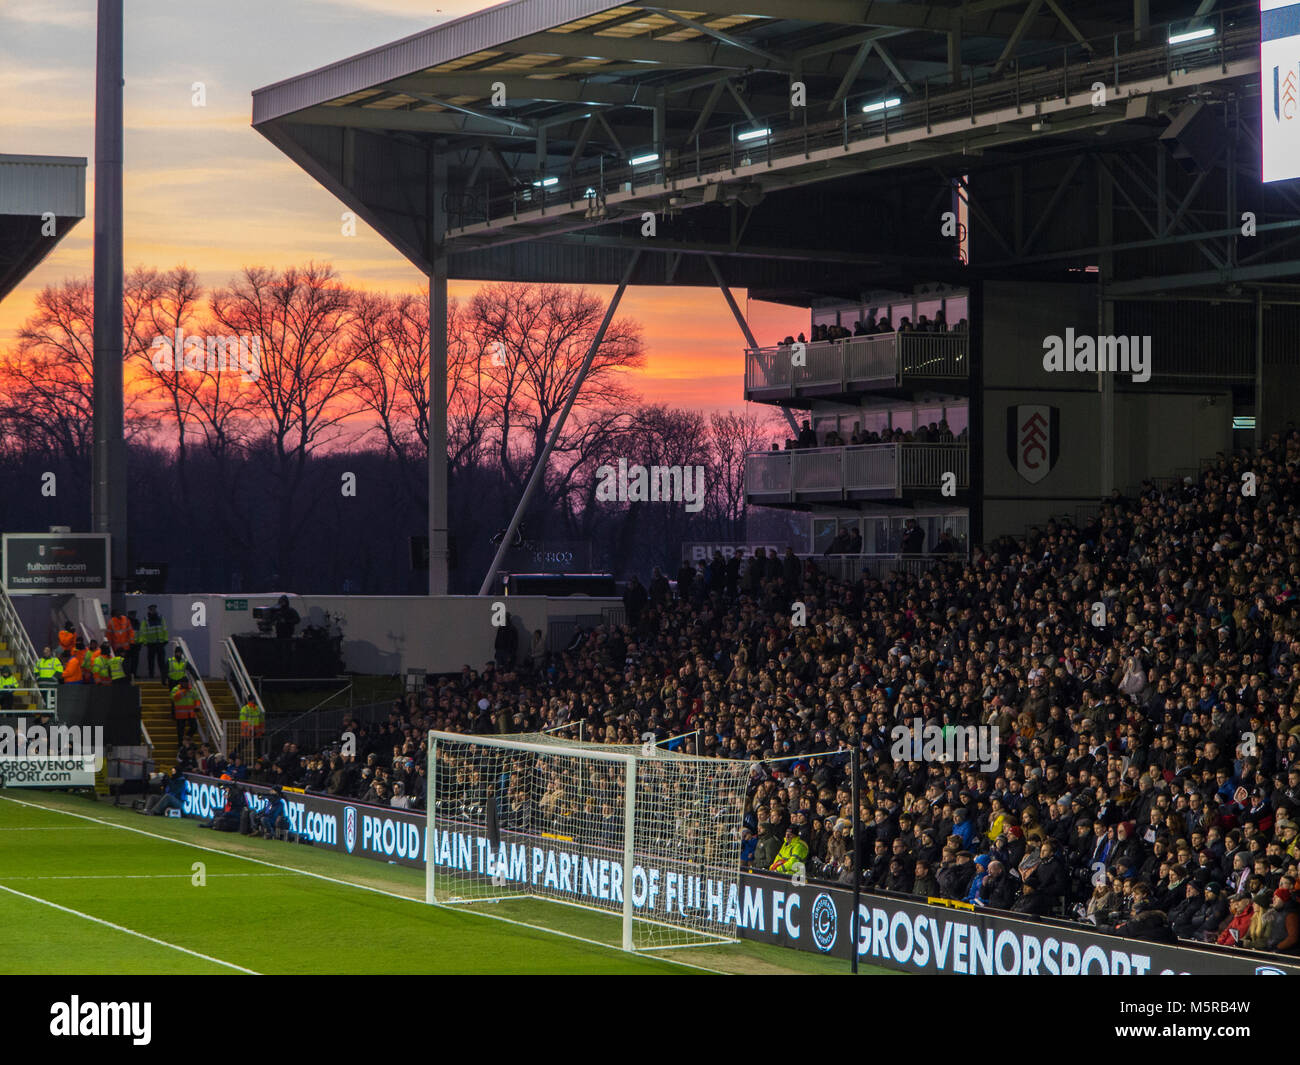 A lovely sunset at Craven Cottage prior to the start of a match - Stock Image